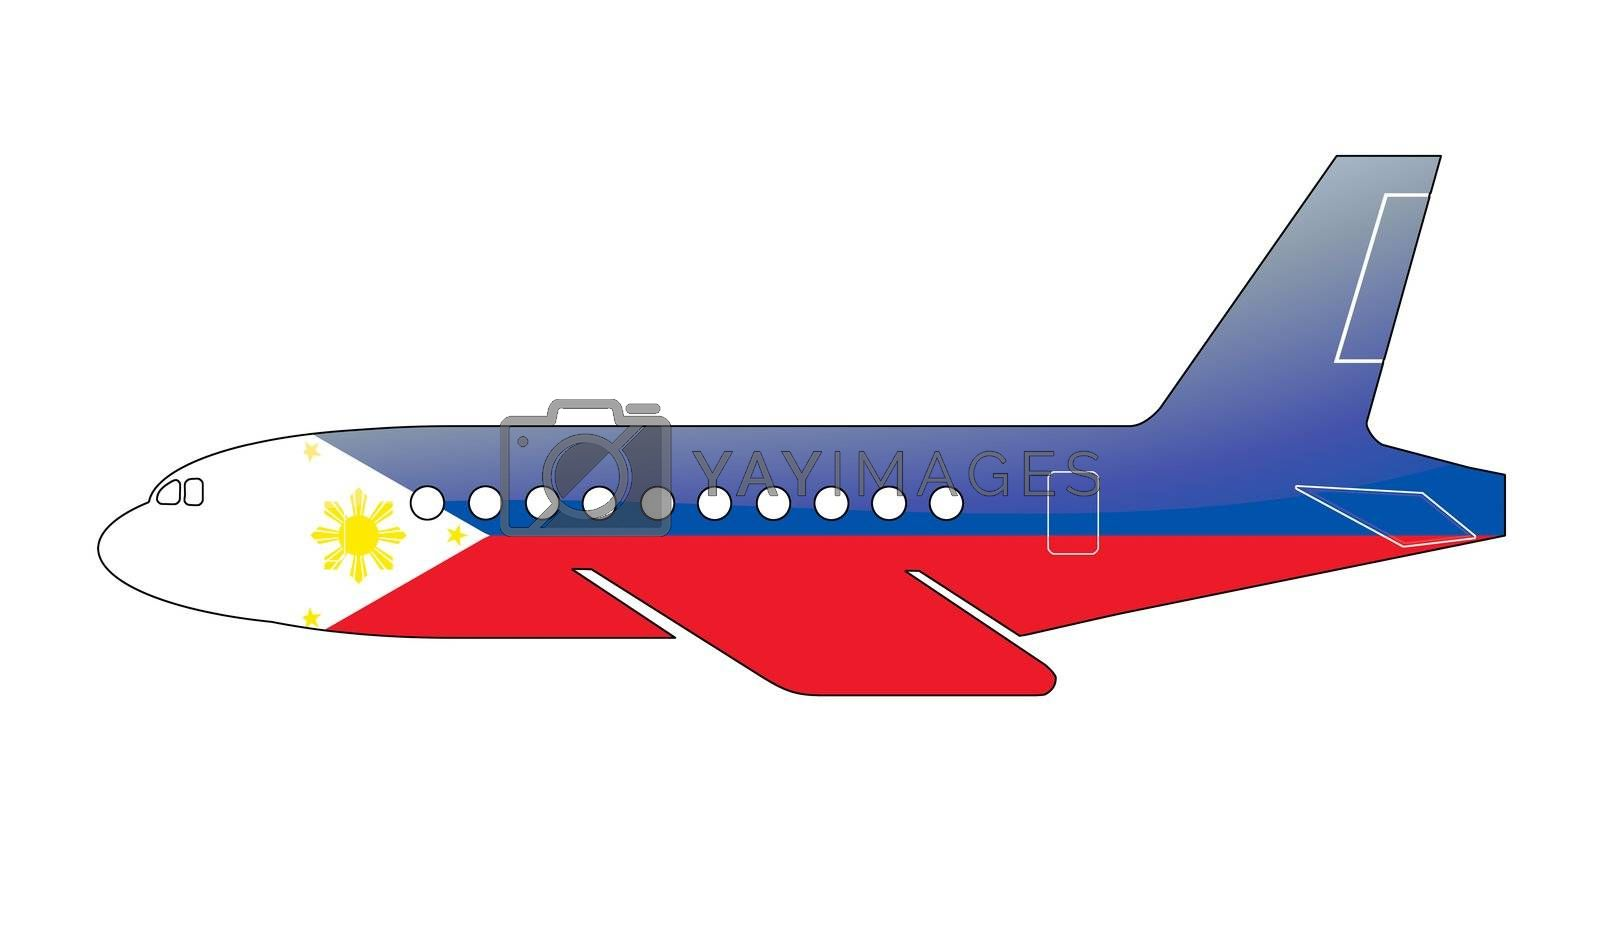 The Philippines flag painted on the silhouette of a aircraft. glossy illustration